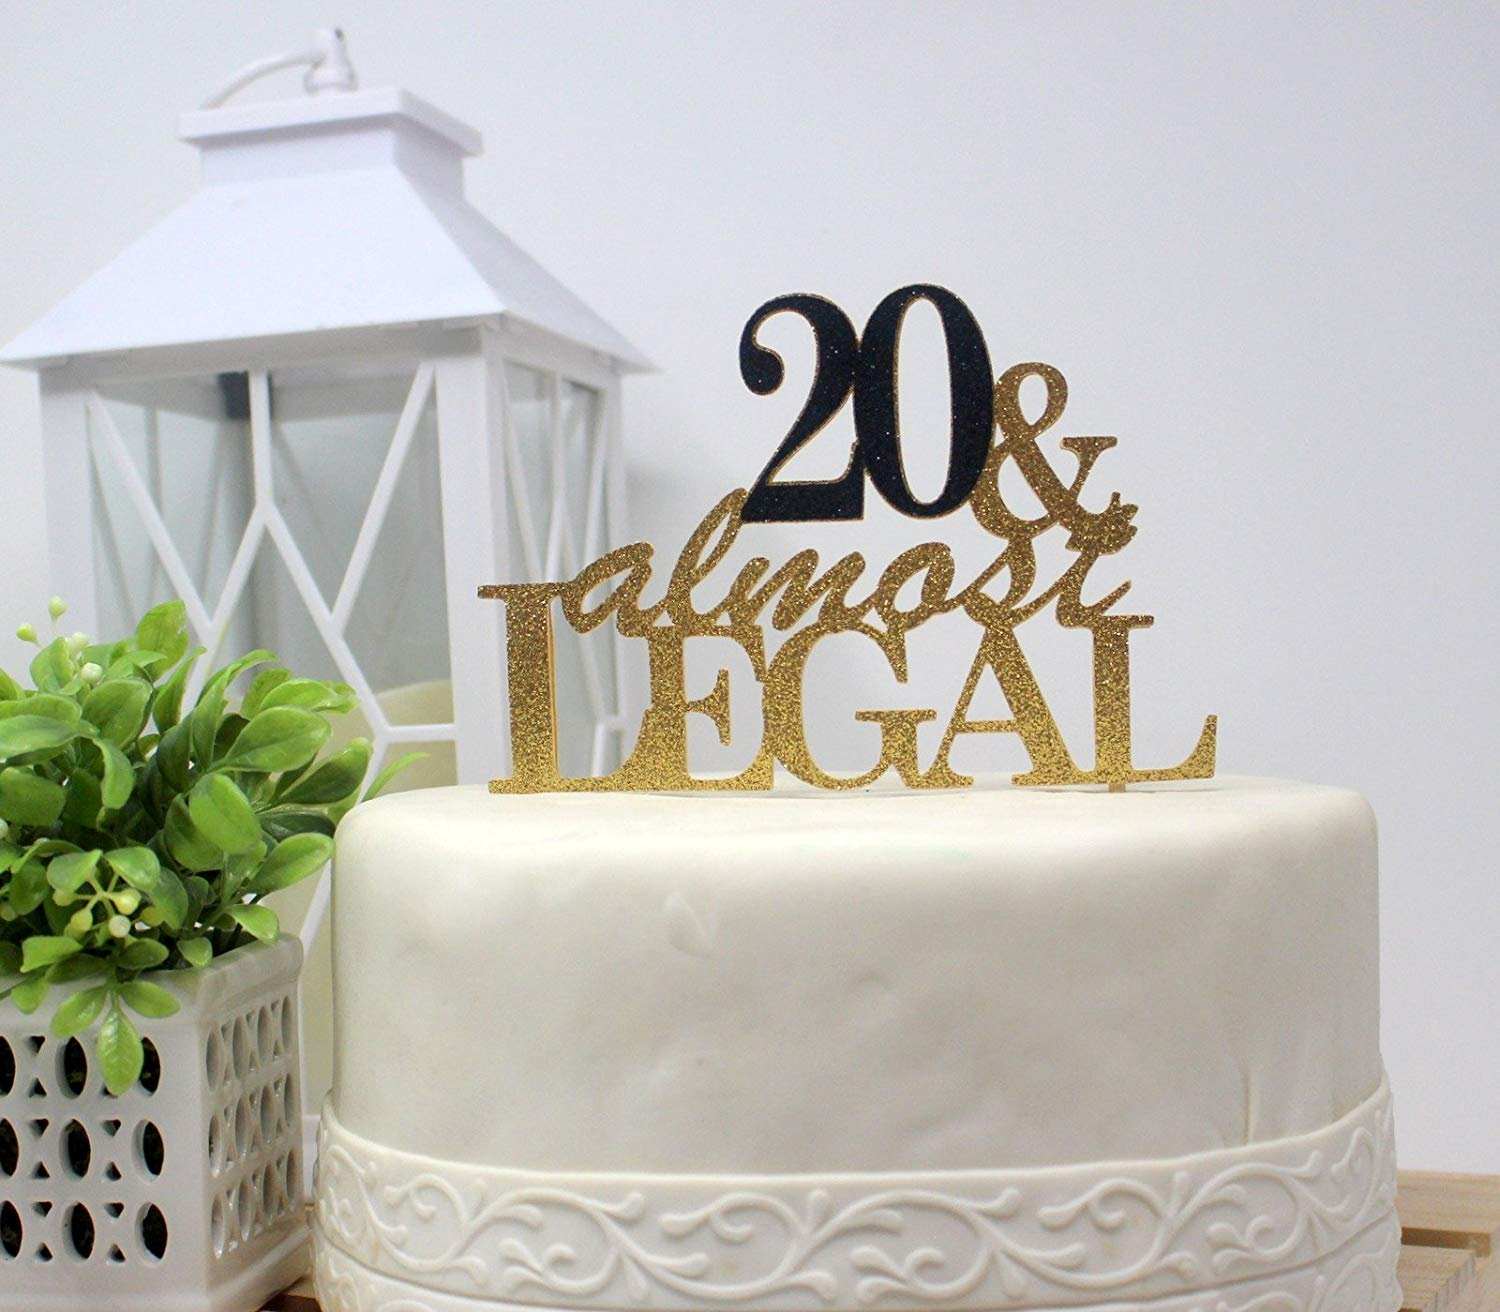 All About Details CAT20AL 20 and Almost Legal Cake (Gold and Black), 1 PC, 20th Birthday, Glitter Topper, 6in Wide, 8in Tall